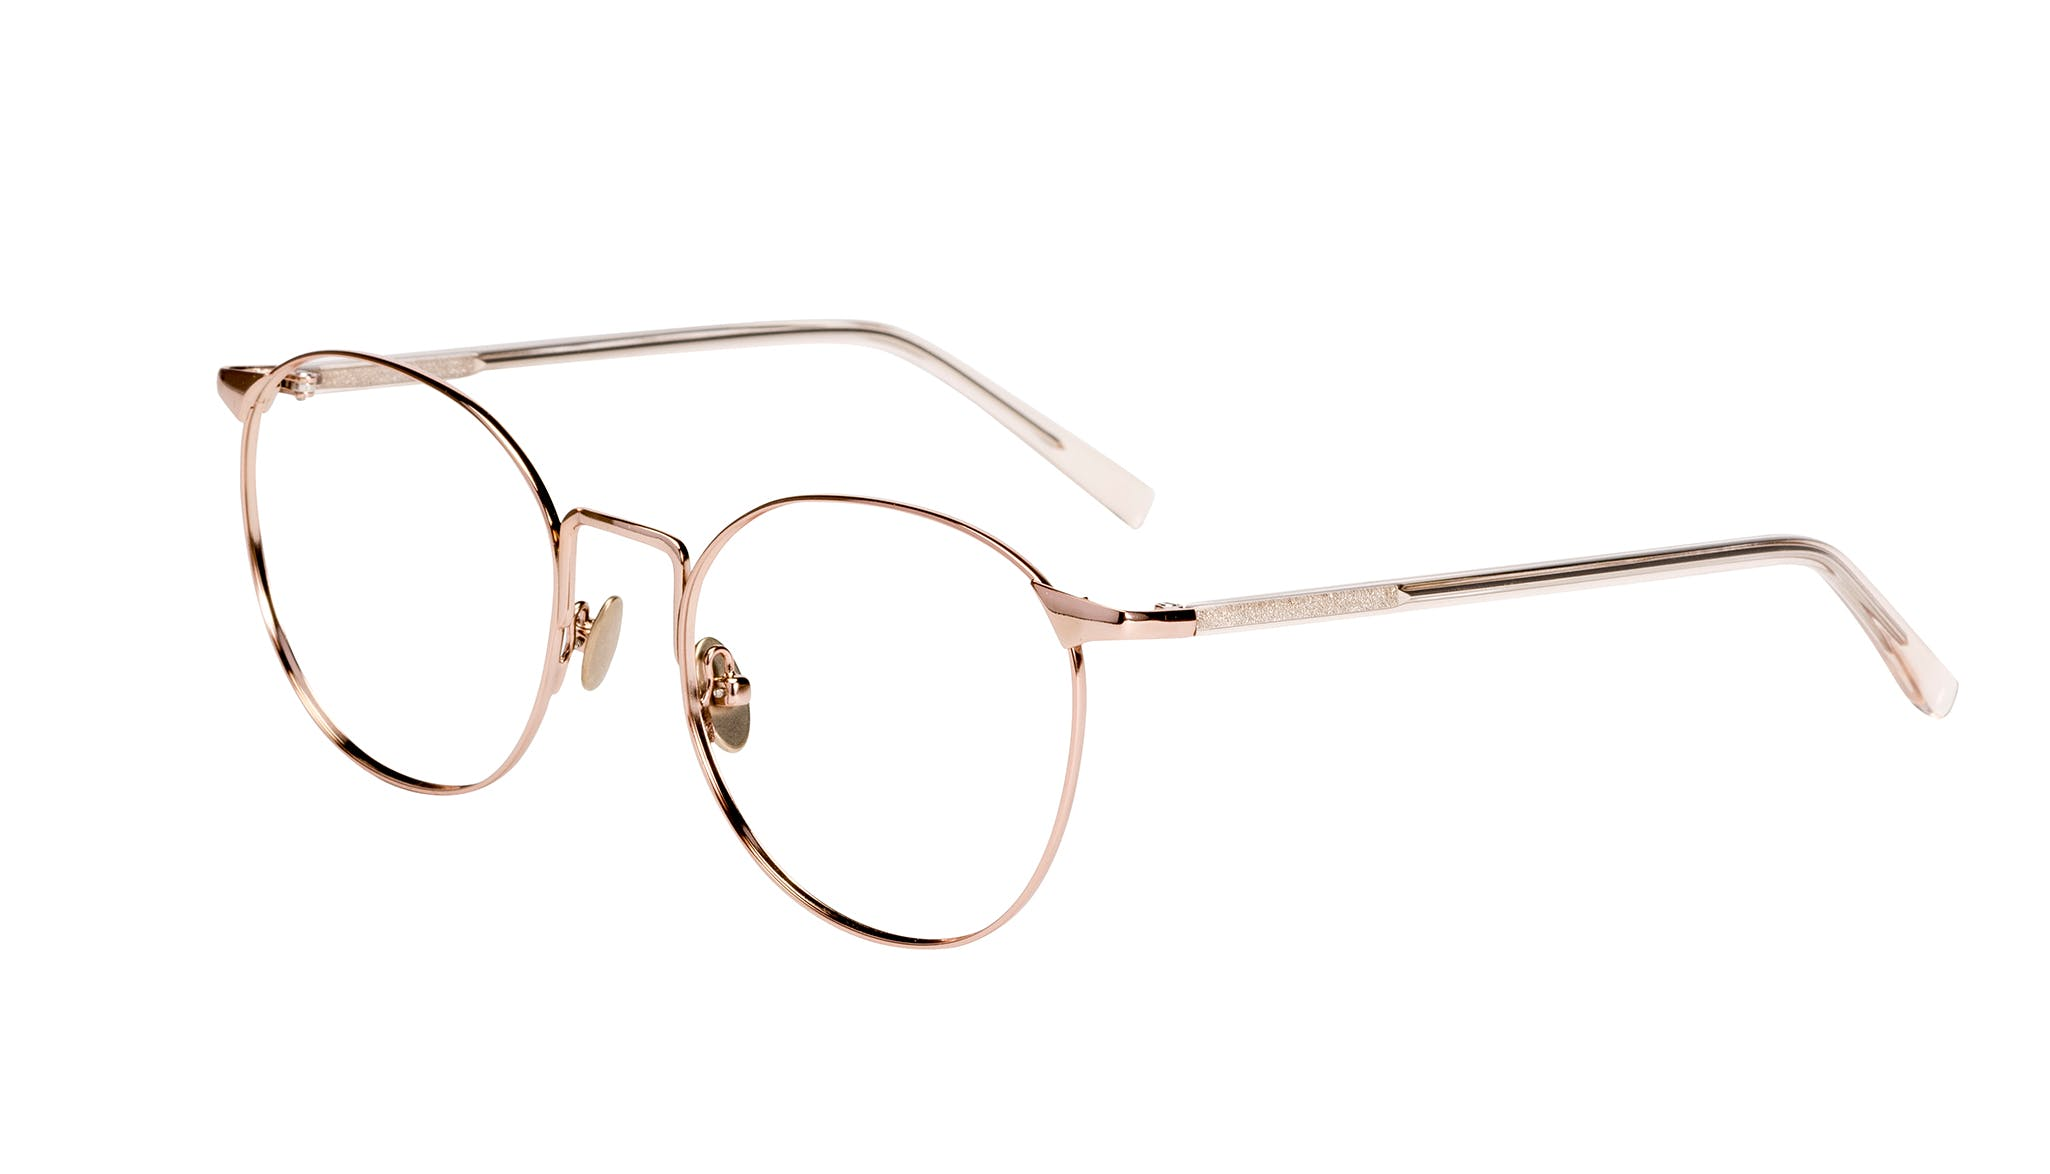 Affordable Fashion Glasses Round Eyeglasses Women Romy Aurore Tilt